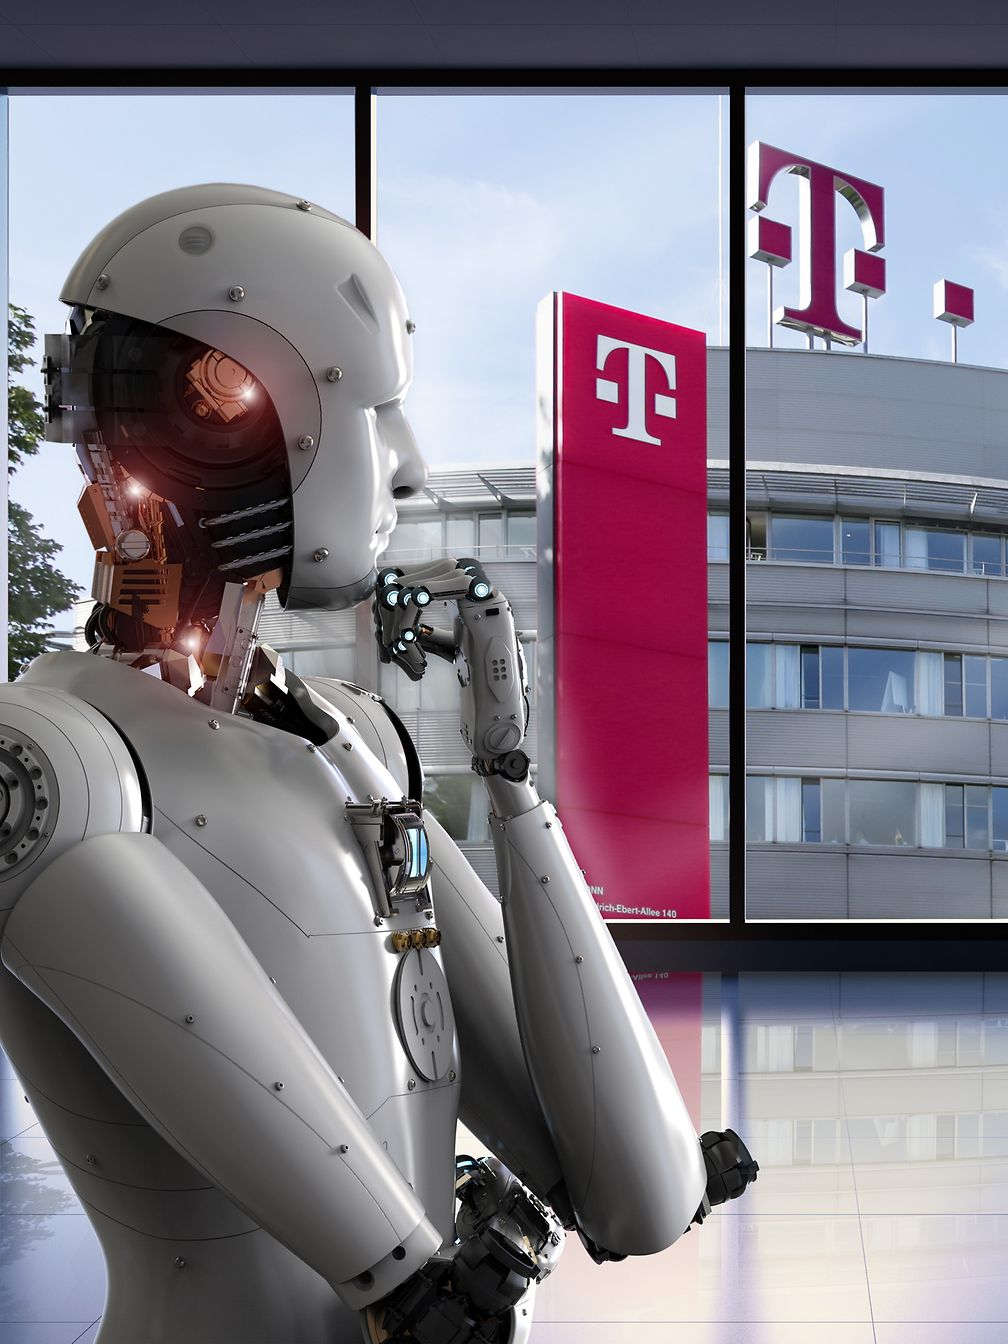 Artificial Intelligence (AI) at Deutsche Telekom